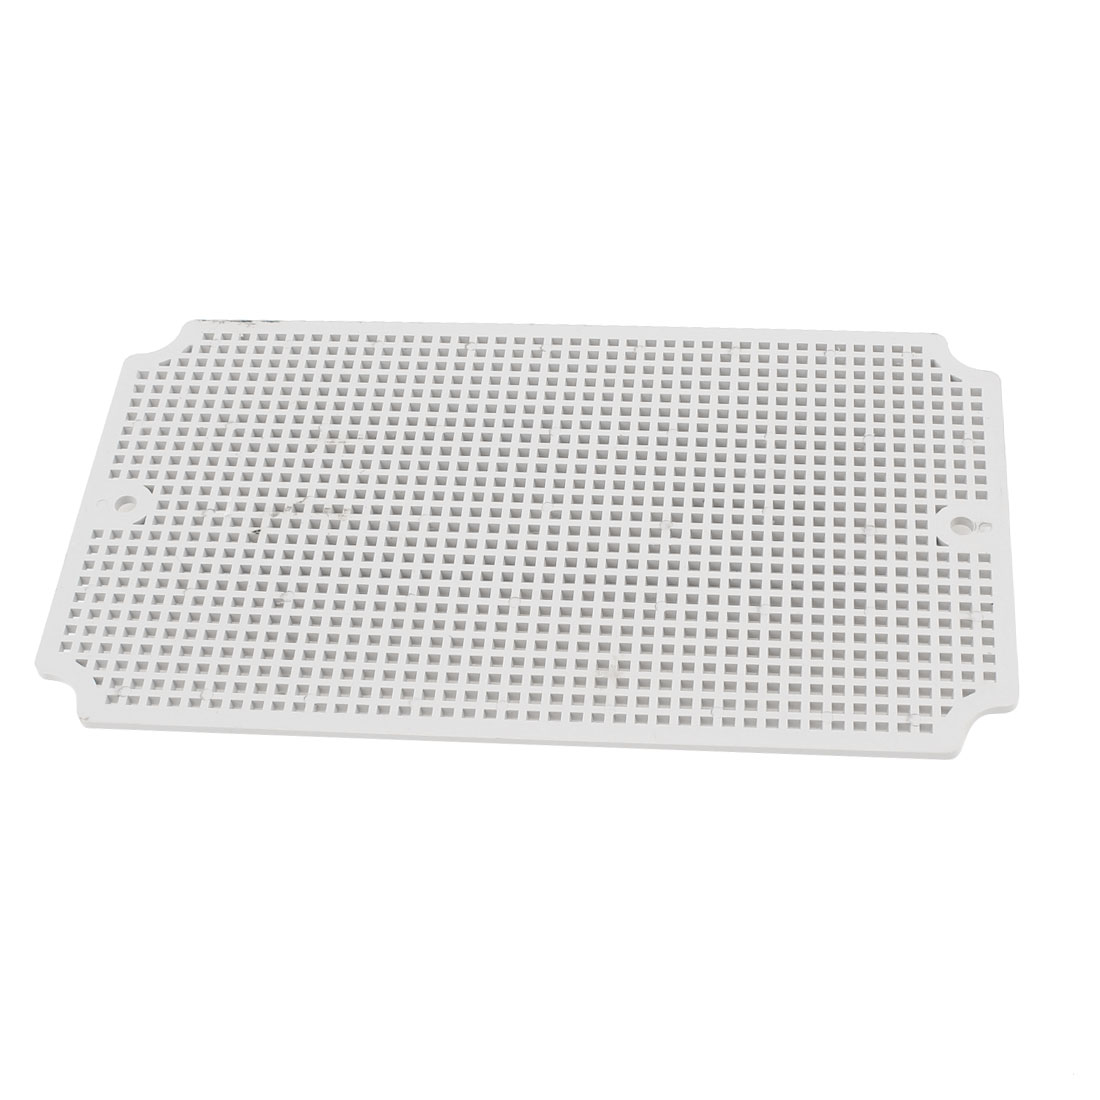 Gray Plastic Mesh Enclosure Mounting Plate for 250 x 150mm Junction Box